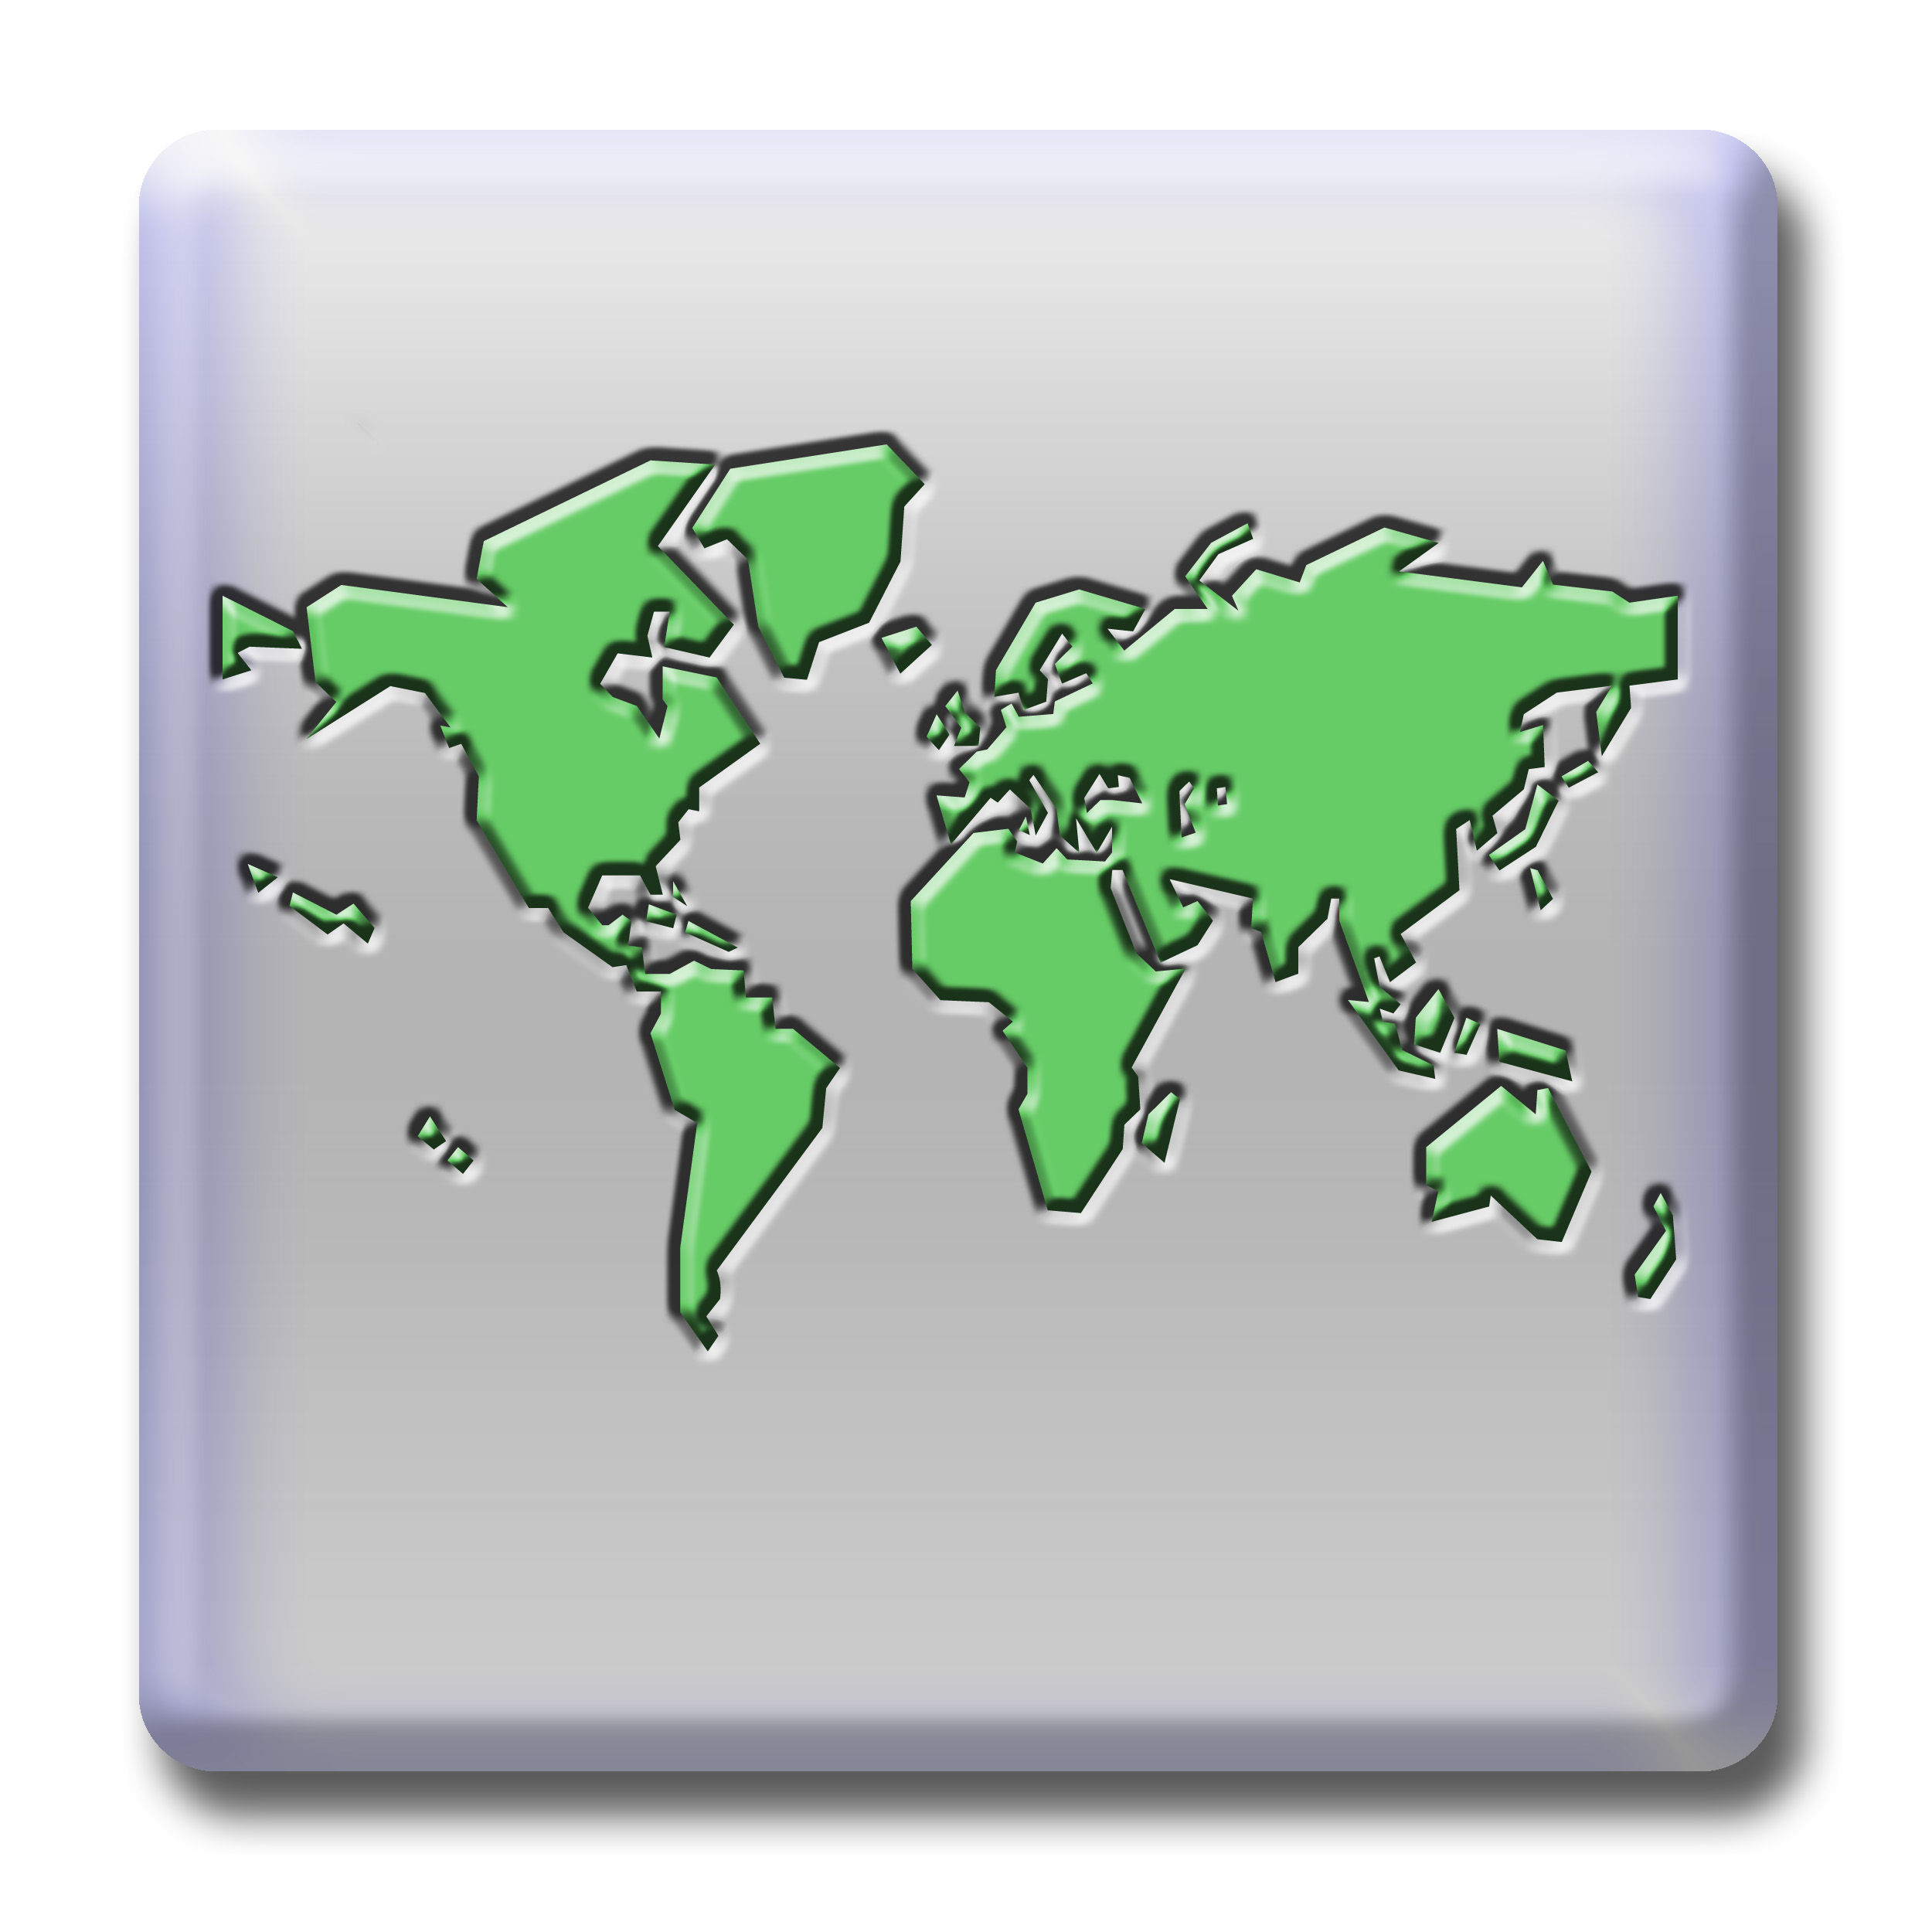 Free stock photo 506 worldmapg freeimageslive a grey button featuring a world map gumiabroncs Choice Image